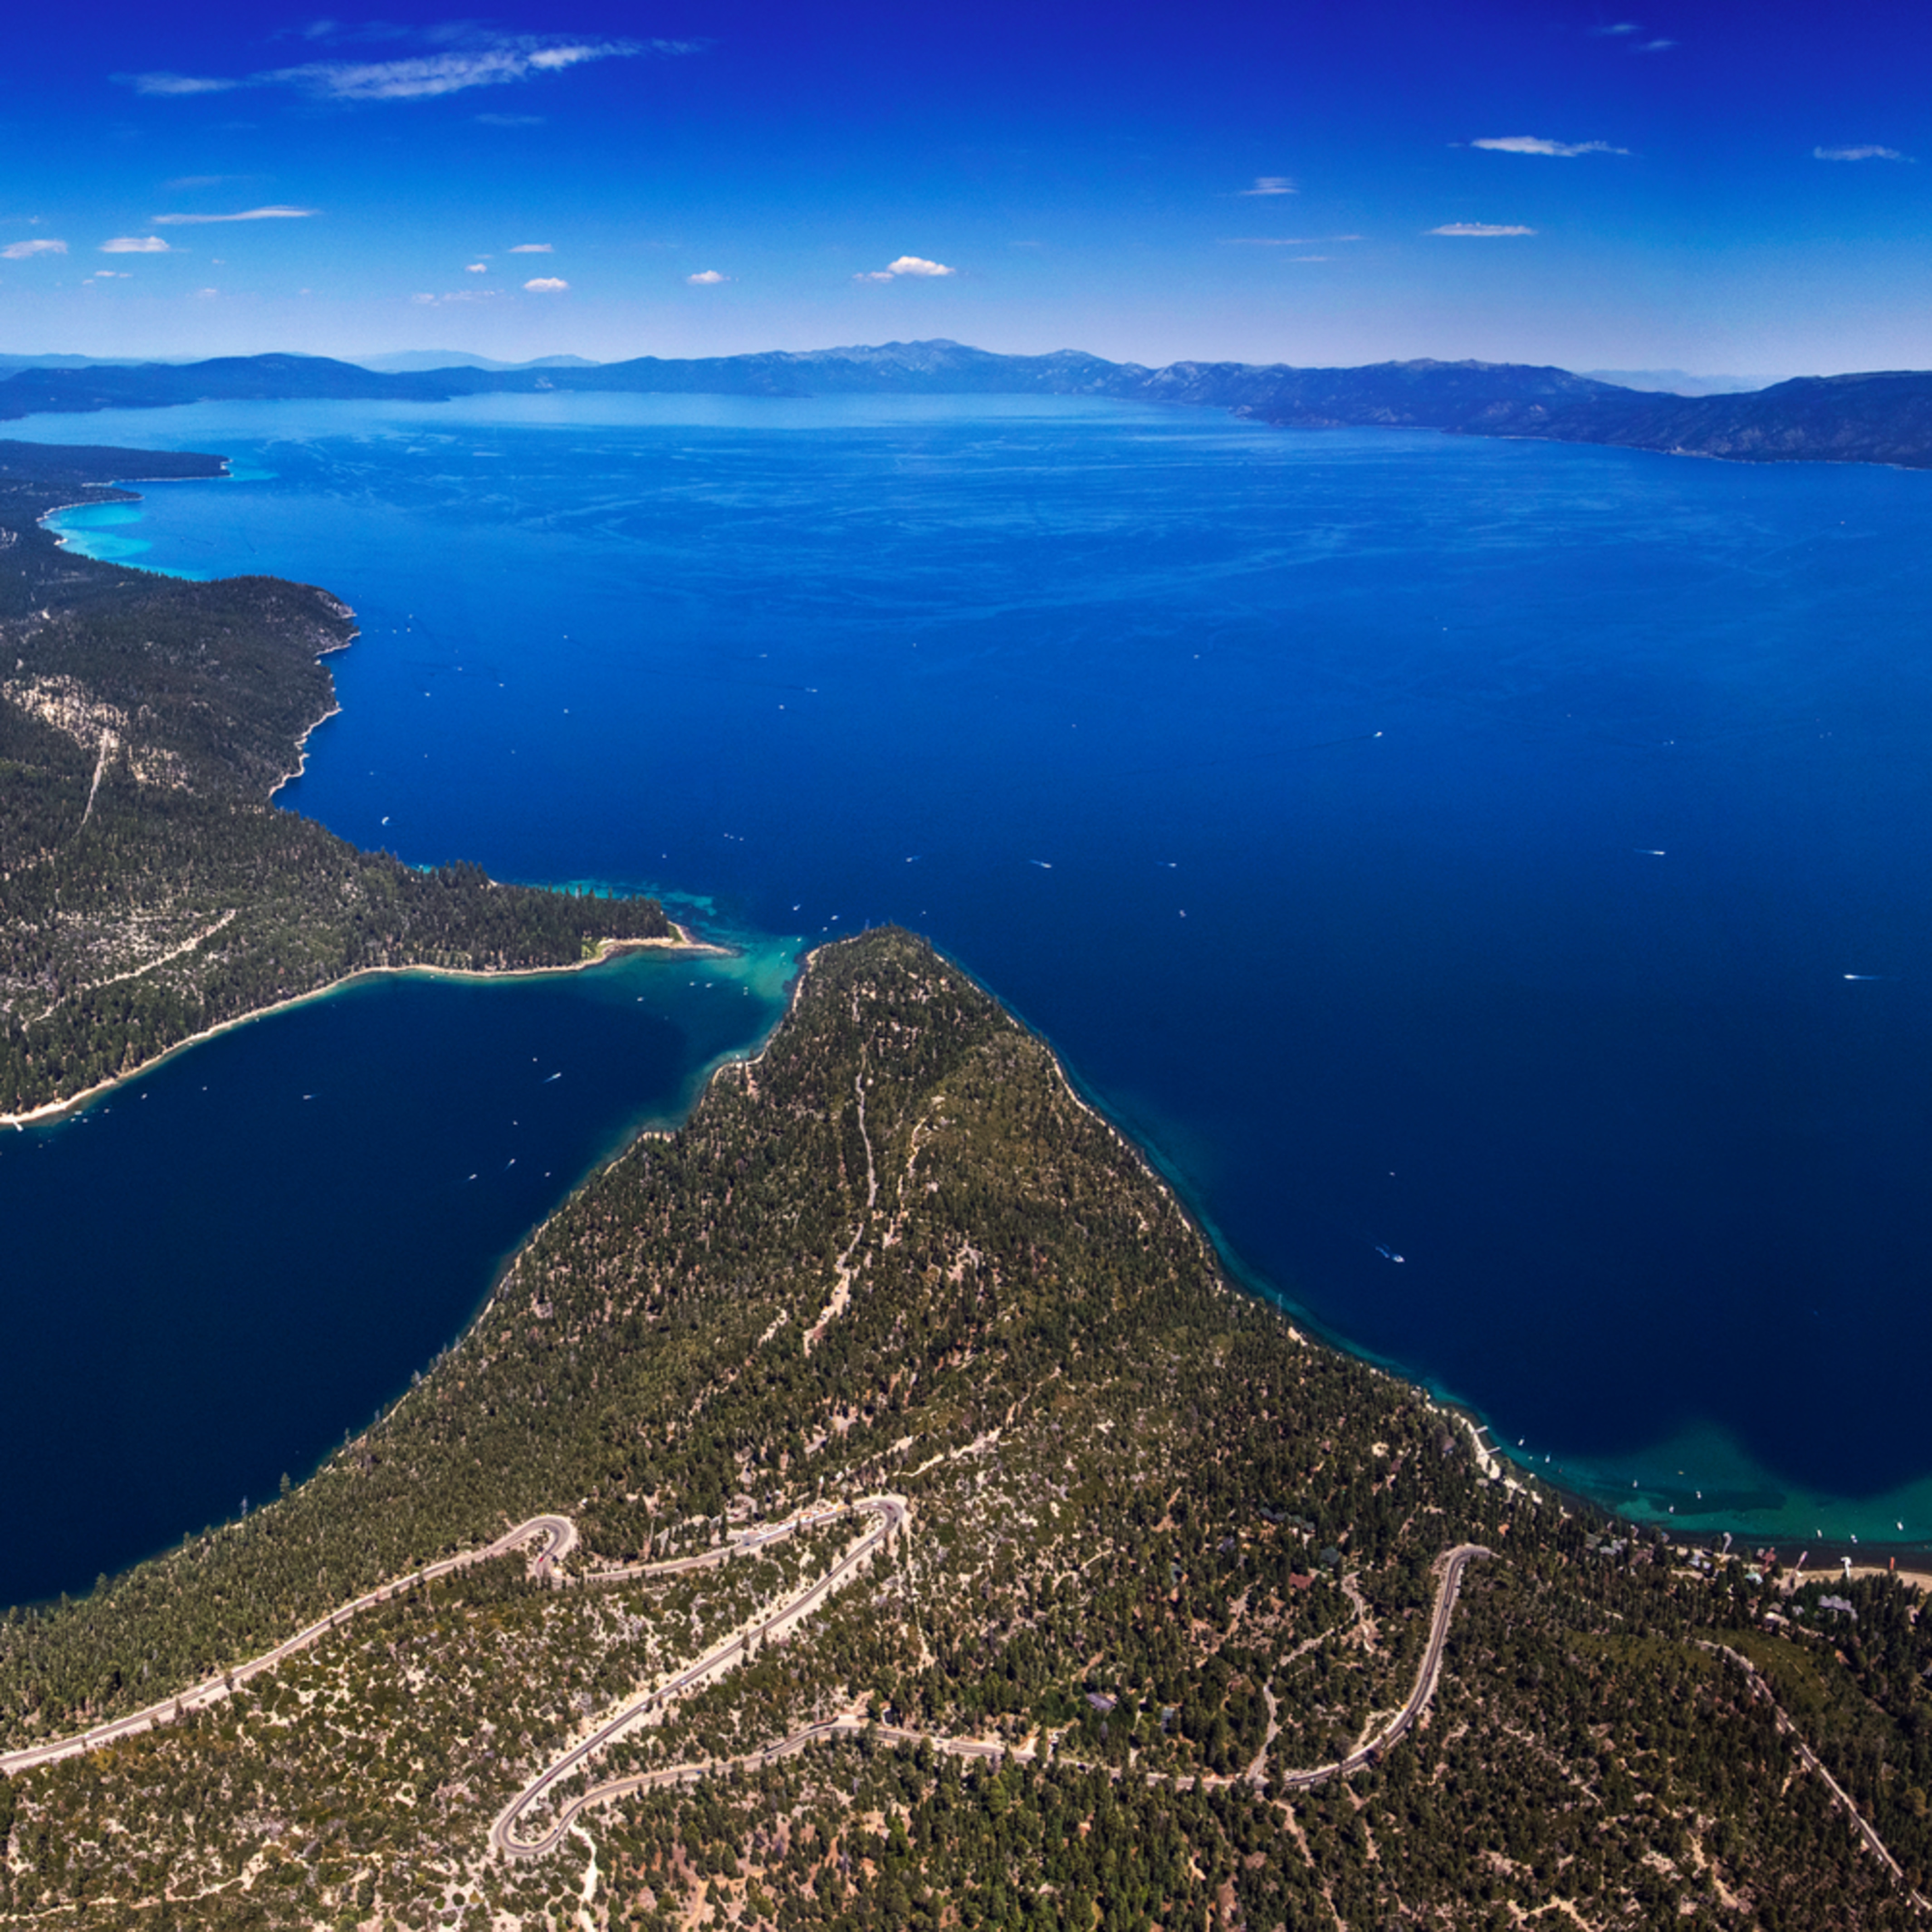 Emerald bay and lake tahoe aerial panorama vgrmcm